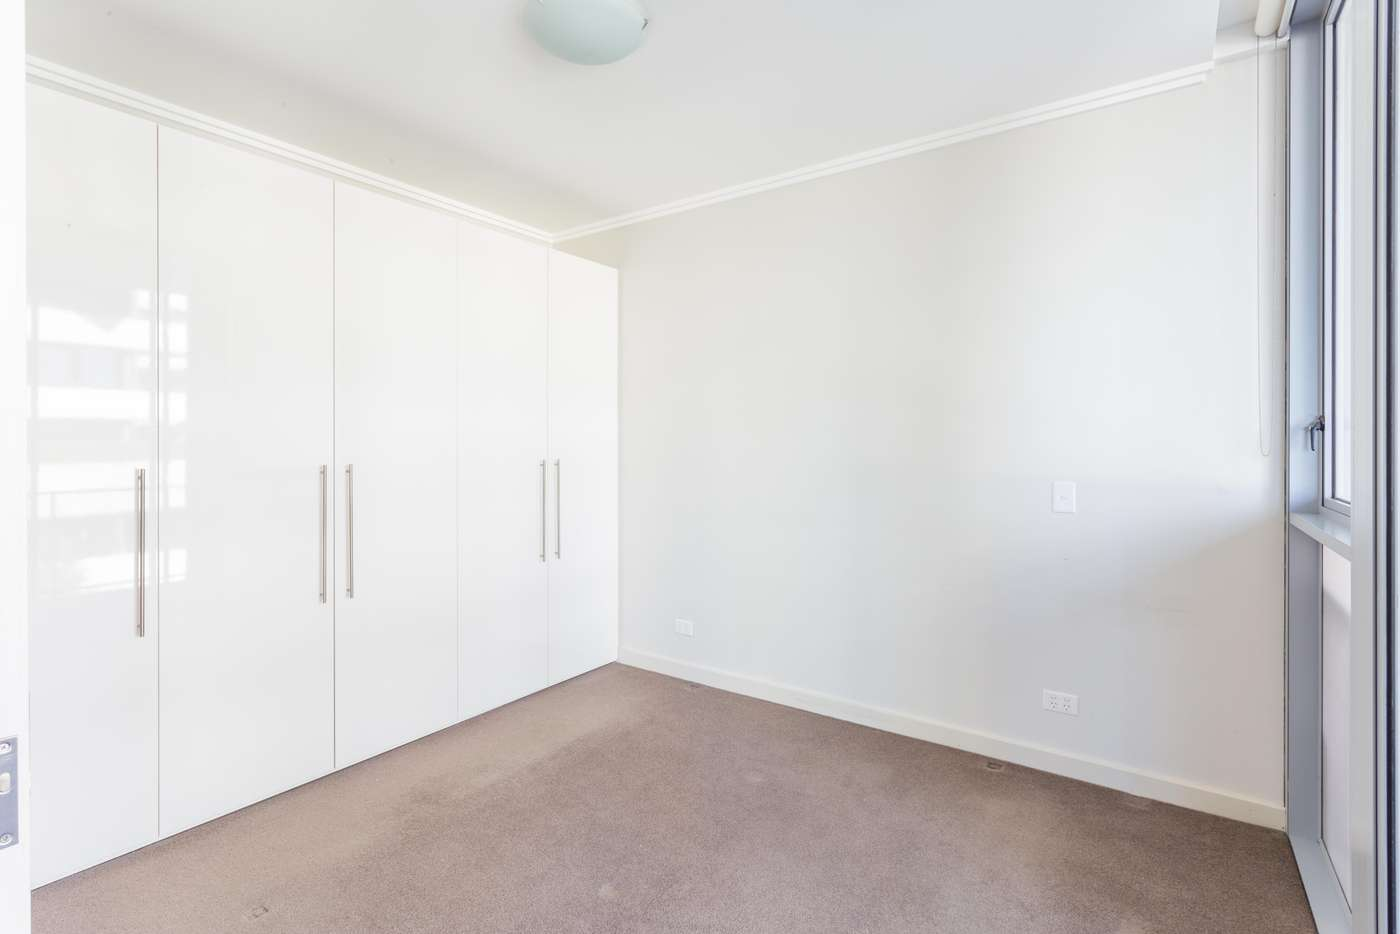 Sixth view of Homely apartment listing, A508/40 Shoreline Drive, Rhodes NSW 2138